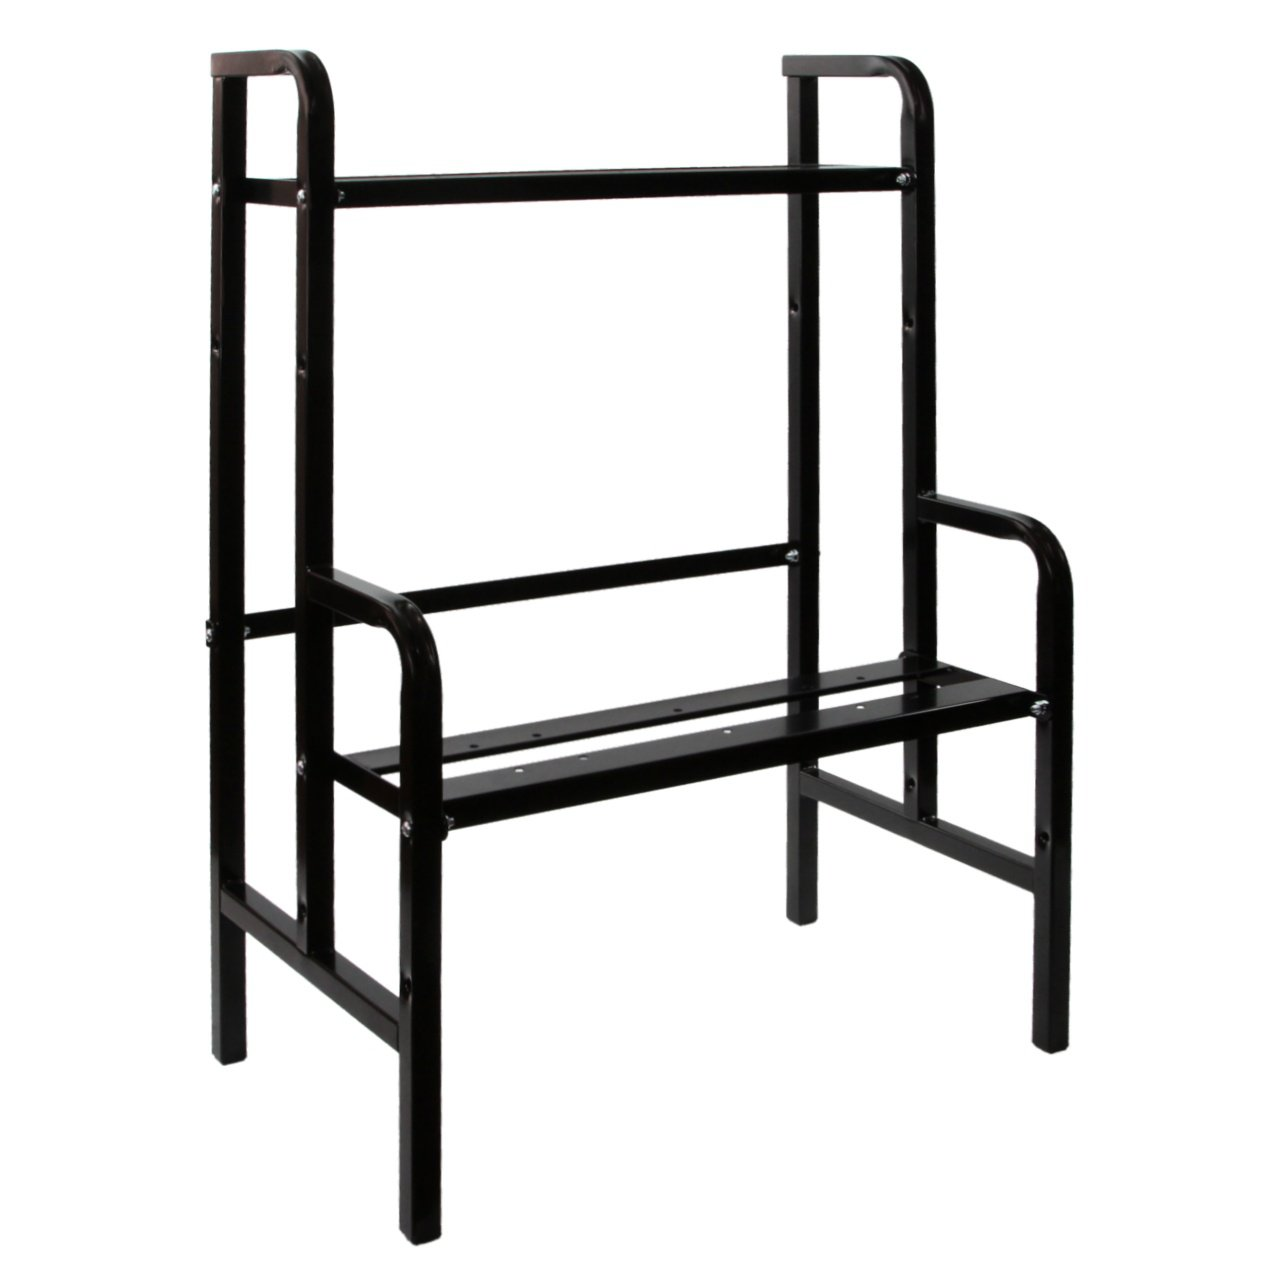 Steel 6 Unit Step Stand